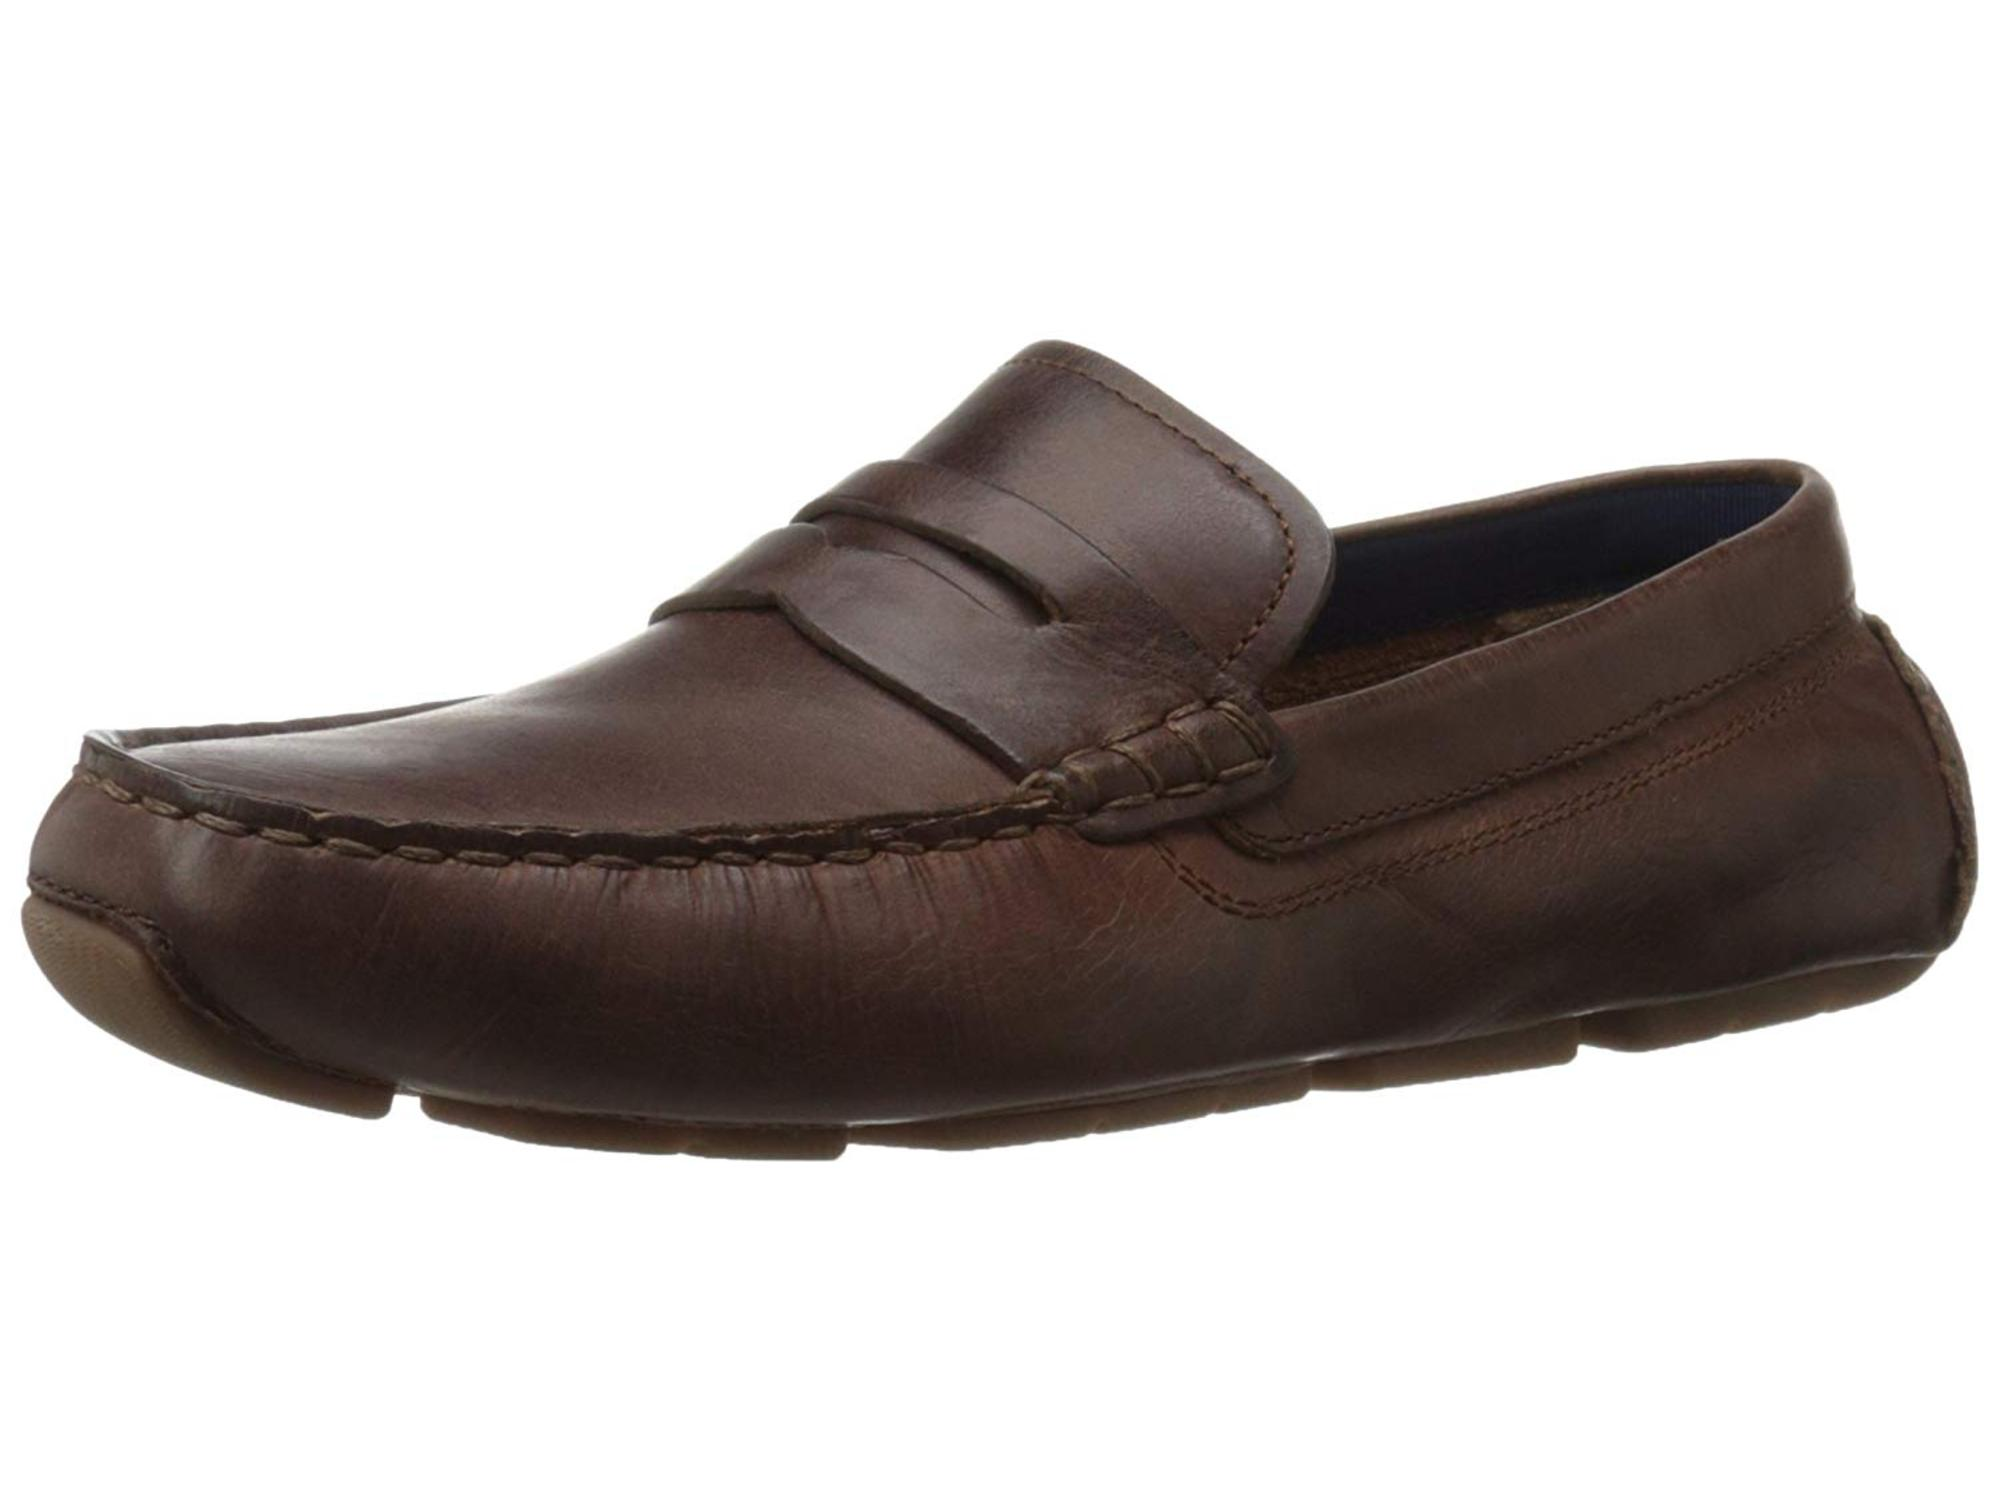 e8981452d45 Cole Haan Men s Kelson Penny Penny Loafer